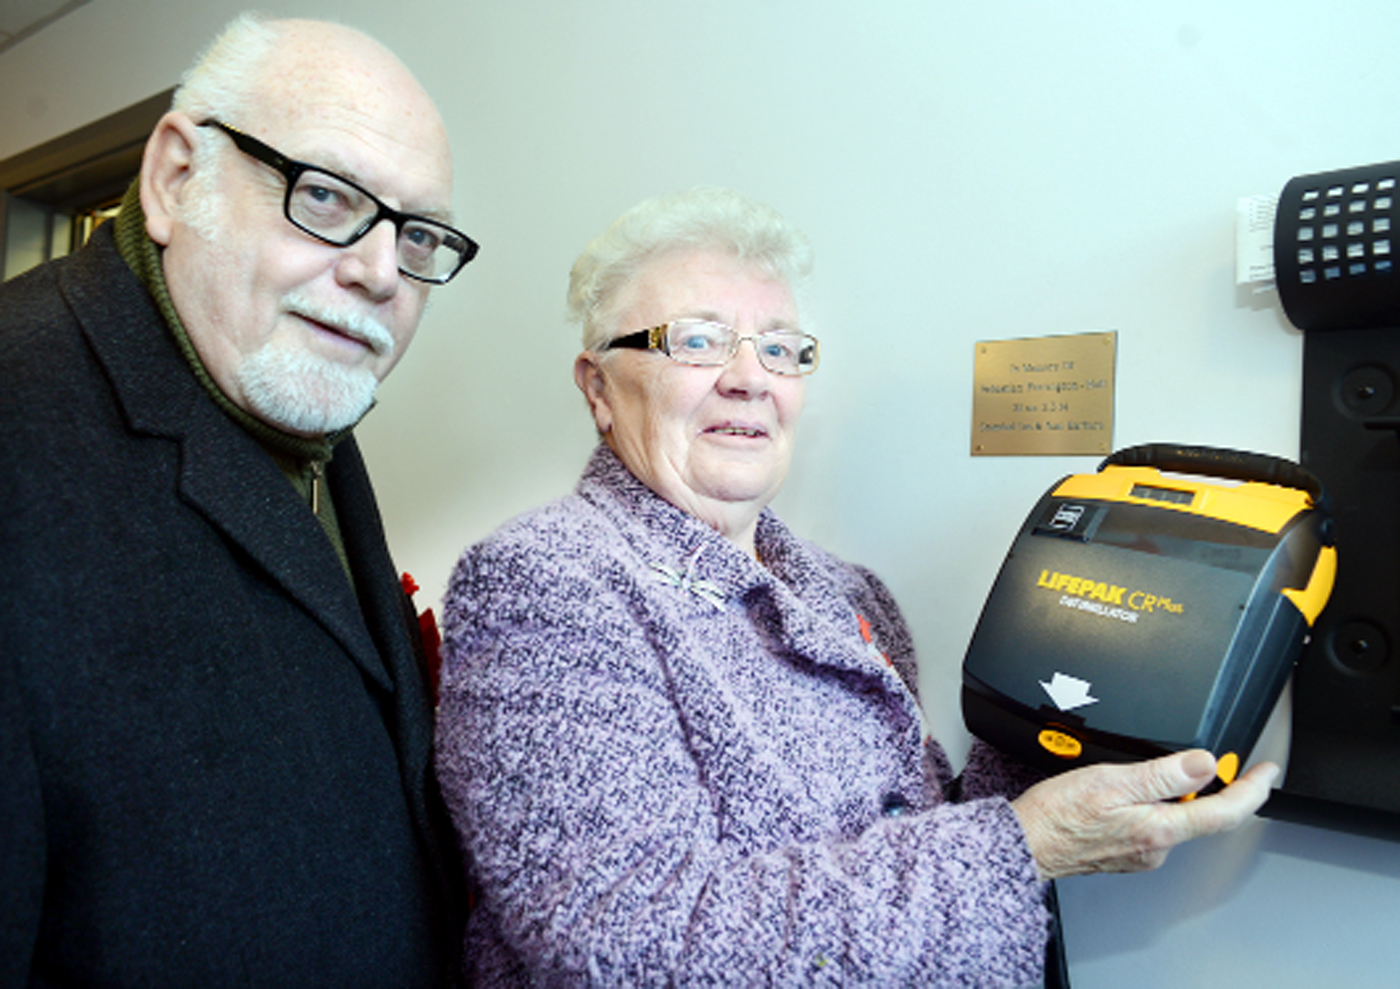 Leslie and Barbara Parrington with the defibrillator